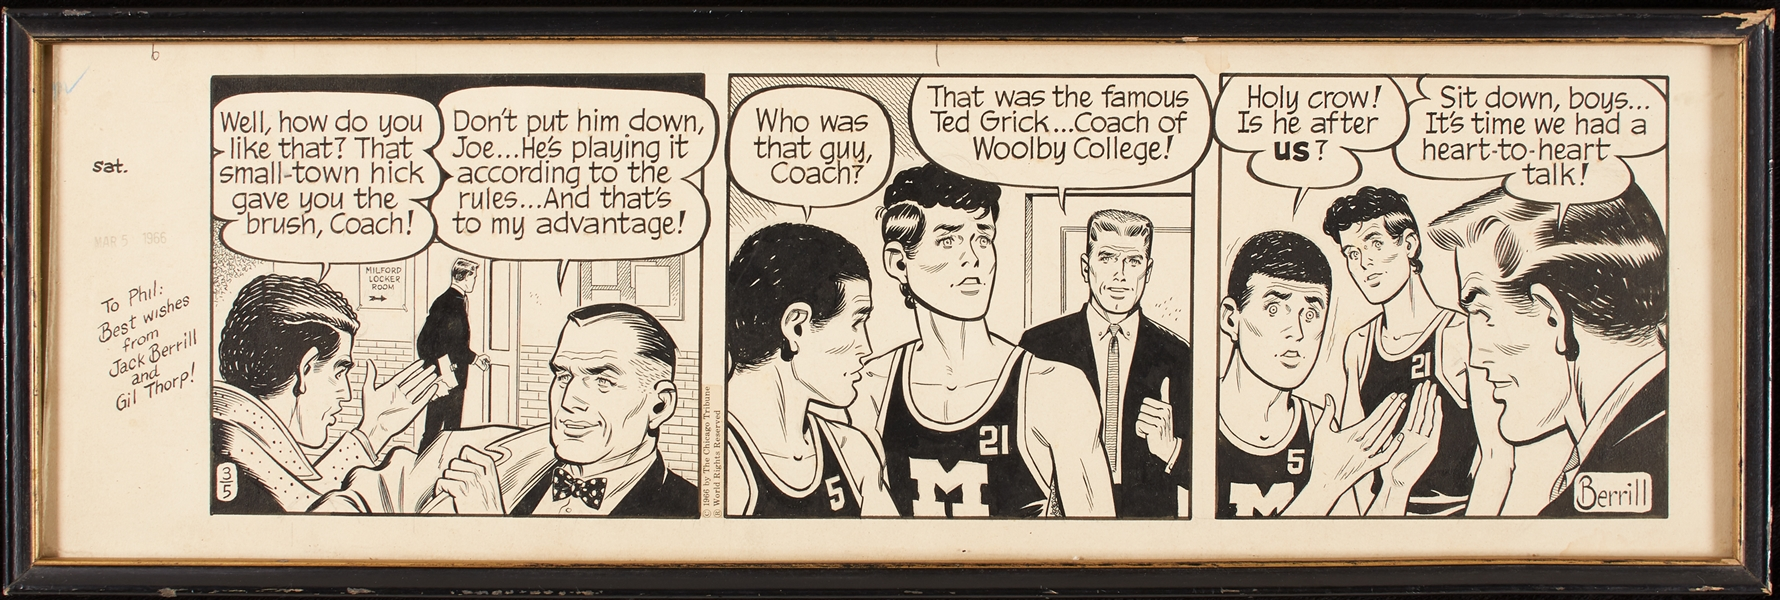 Gil Thorp Comic Strip Art by Jack Berrill (March 5, 1966)